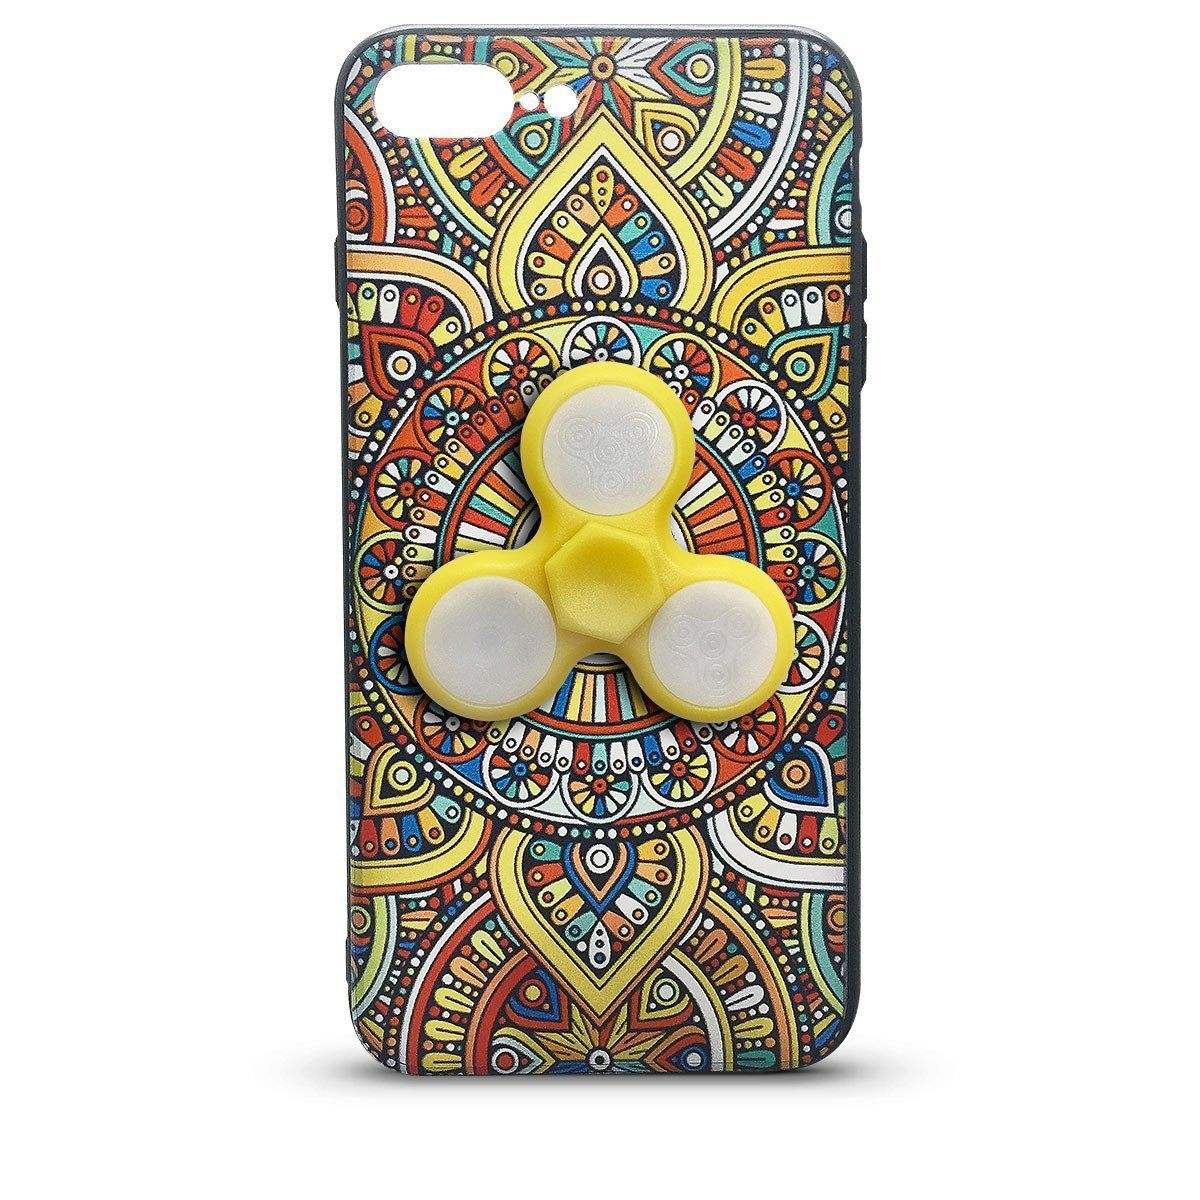 Fidget Case for iPhone 6P - Yellow